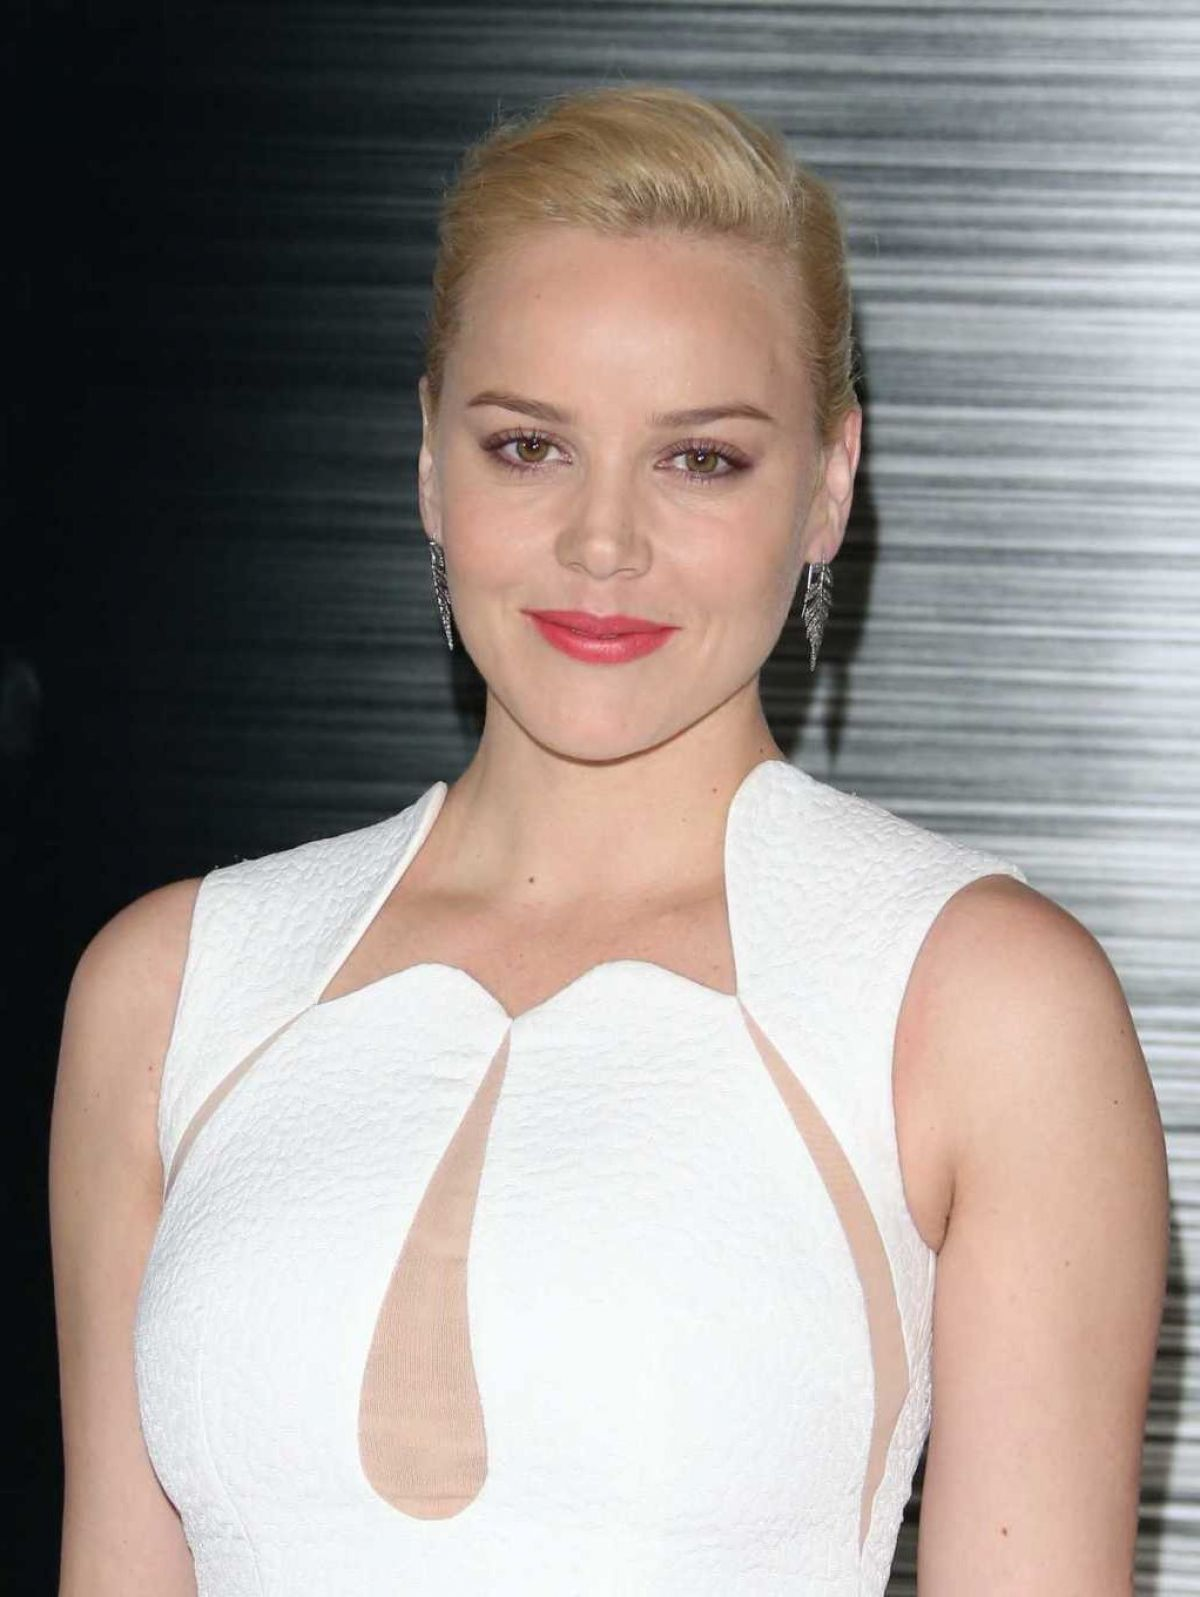 ABBIE CORNISH at Robocop Photocall in Los Angeles - HawtCelebs ... Abbie Cornish